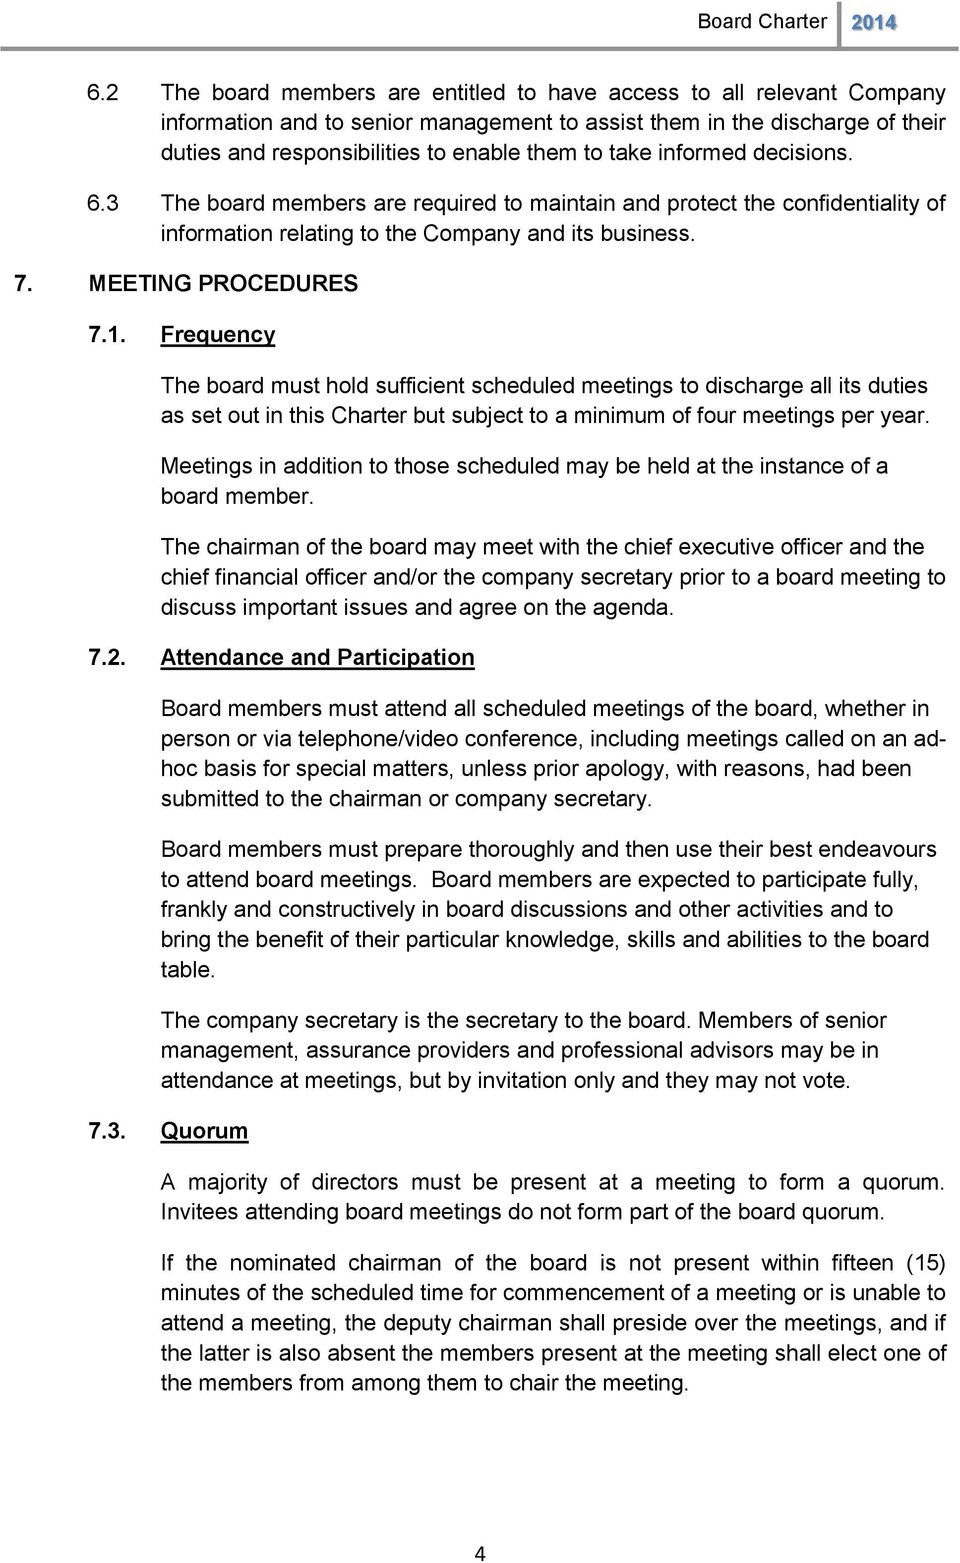 Frequency The board must hold sufficient scheduled meetings to discharge all its duties as set out in this Charter but subject to a minimum of four meetings per year.